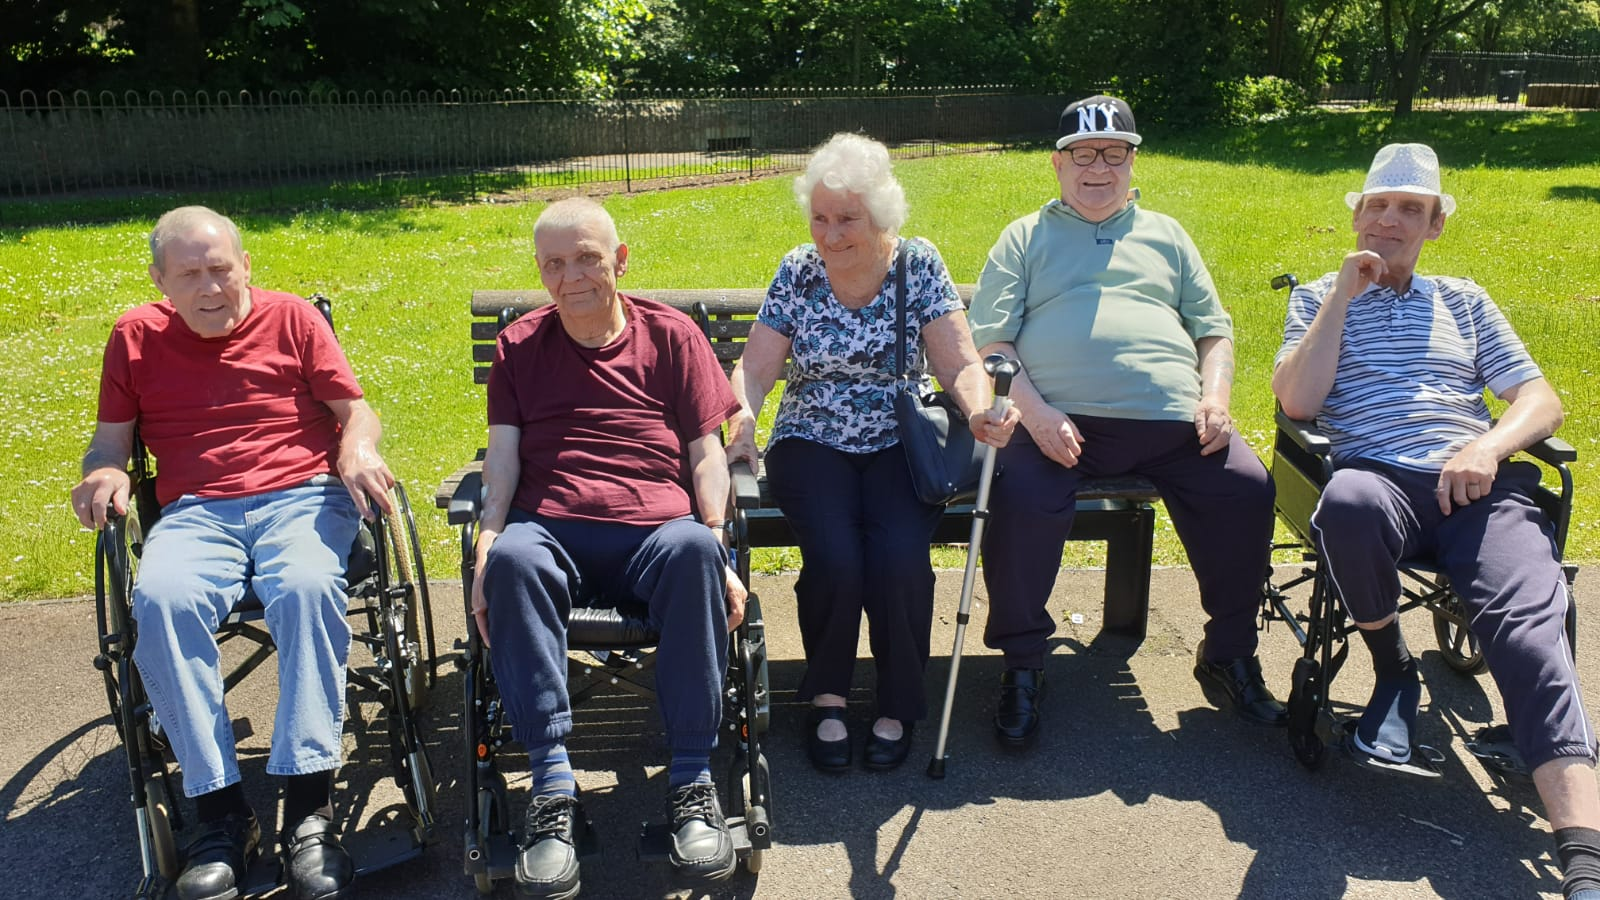 A walk in the park!: Key Healthcare is dedicated to caring for elderly residents in safe. We have multiple dementia care homes including our care home middlesbrough, our care home St. Helen and care home saltburn. We excel in monitoring and improving care levels.